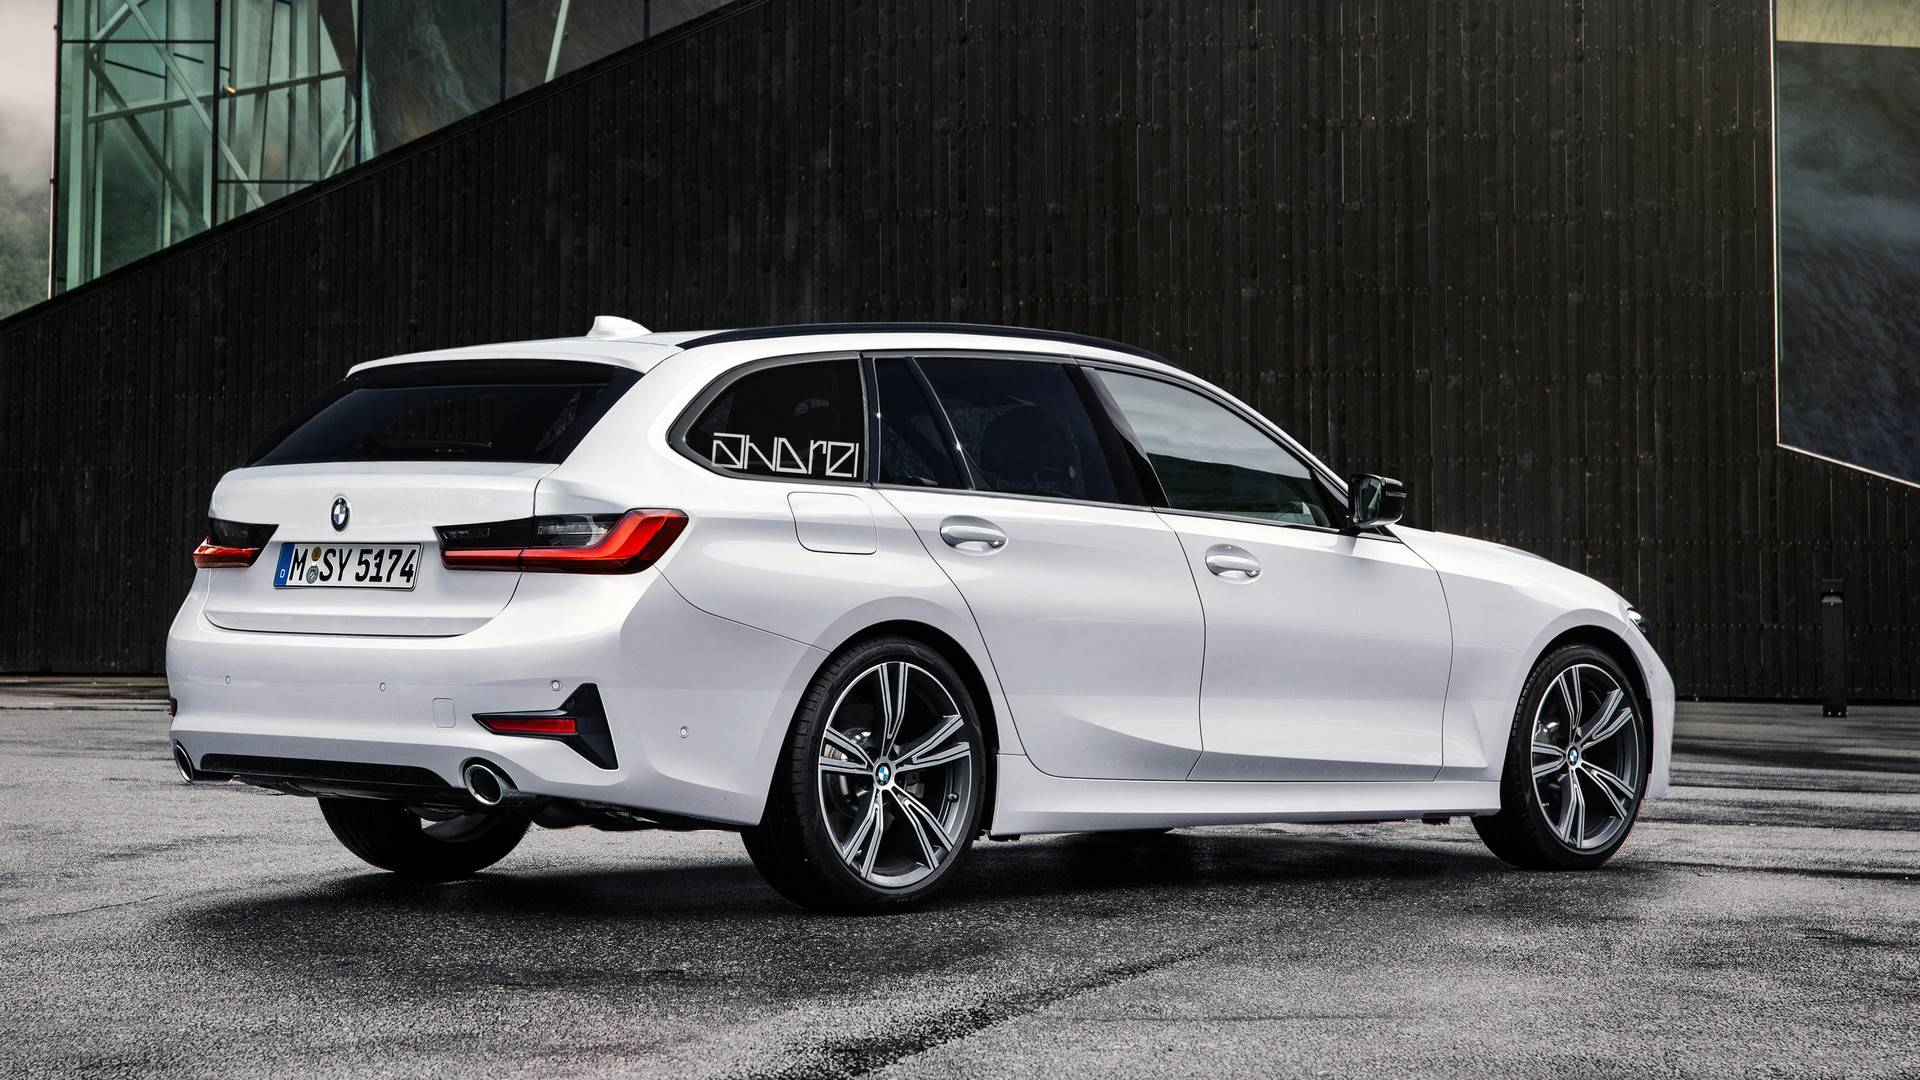 2020 Bmw 3 Series Wagon Render Brings Sexy Back